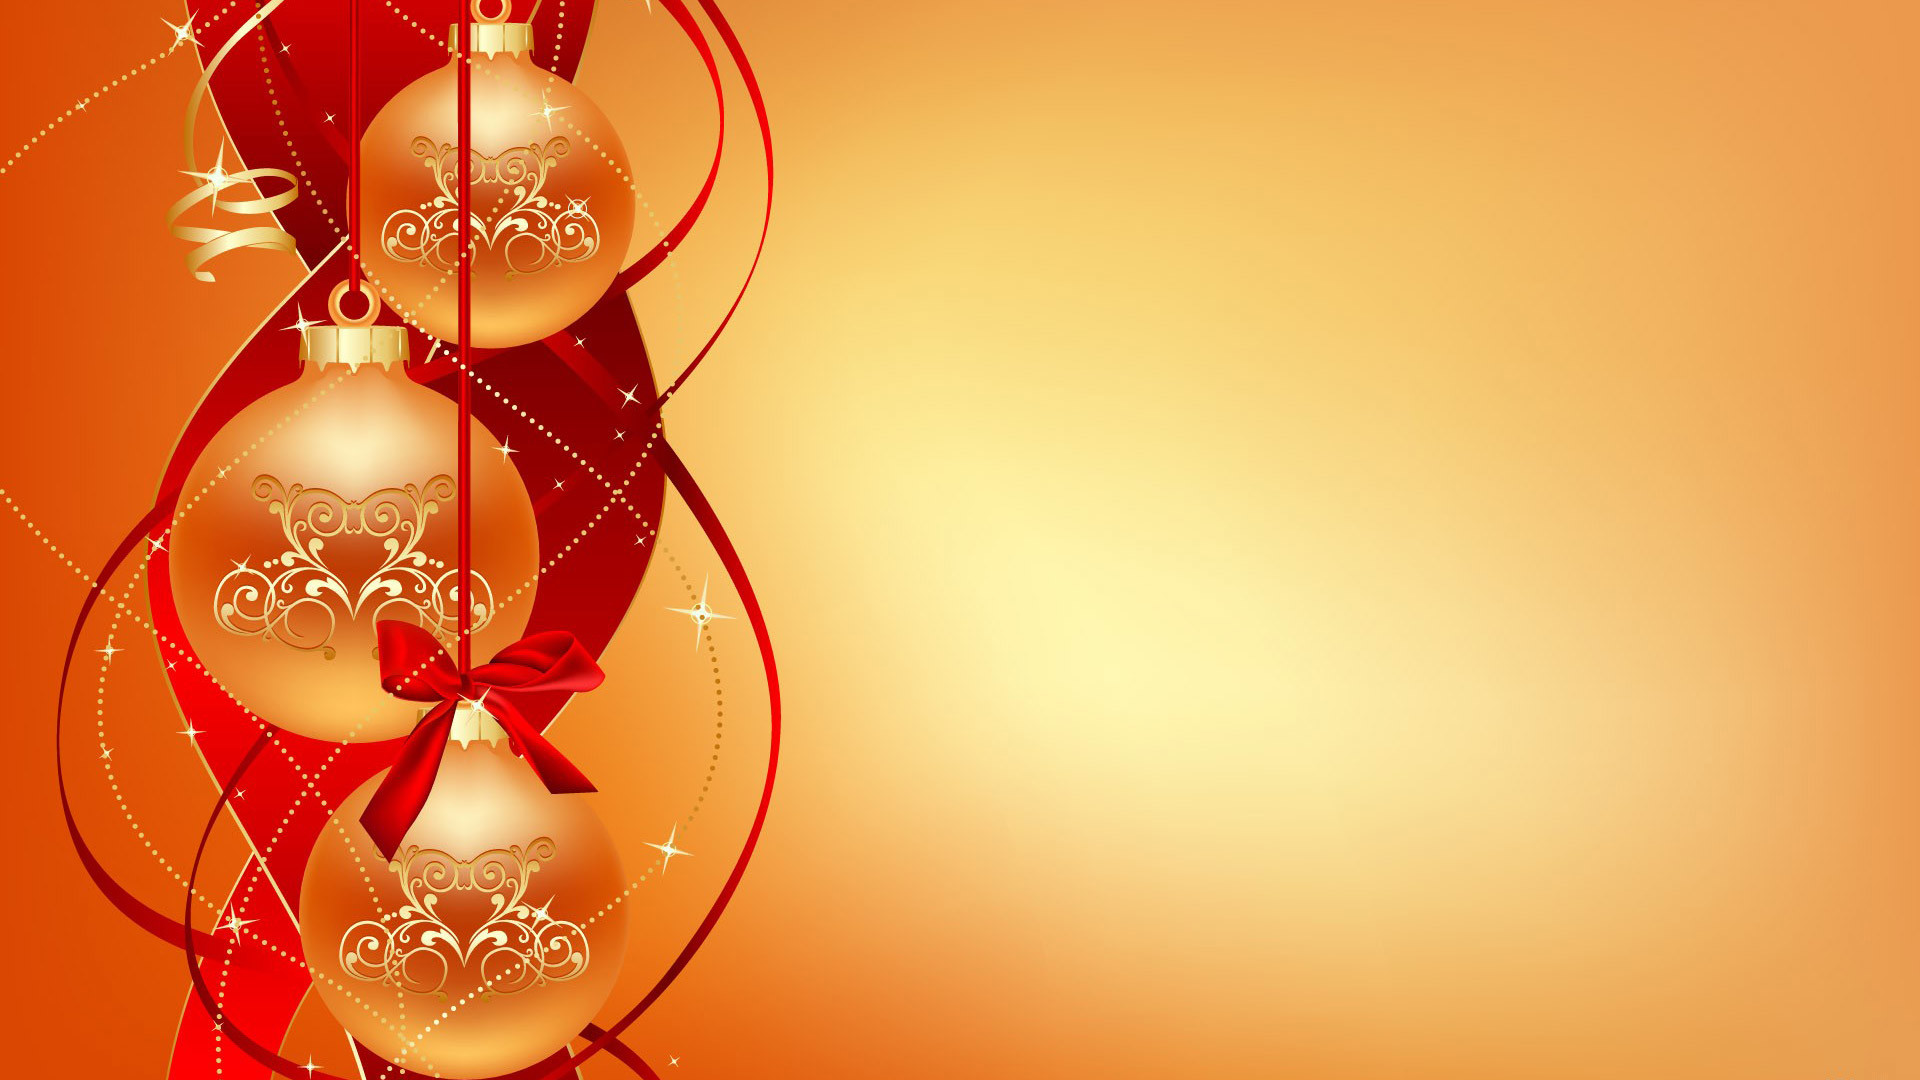 New year background images 42 images for Photoshop weihnachtskarte